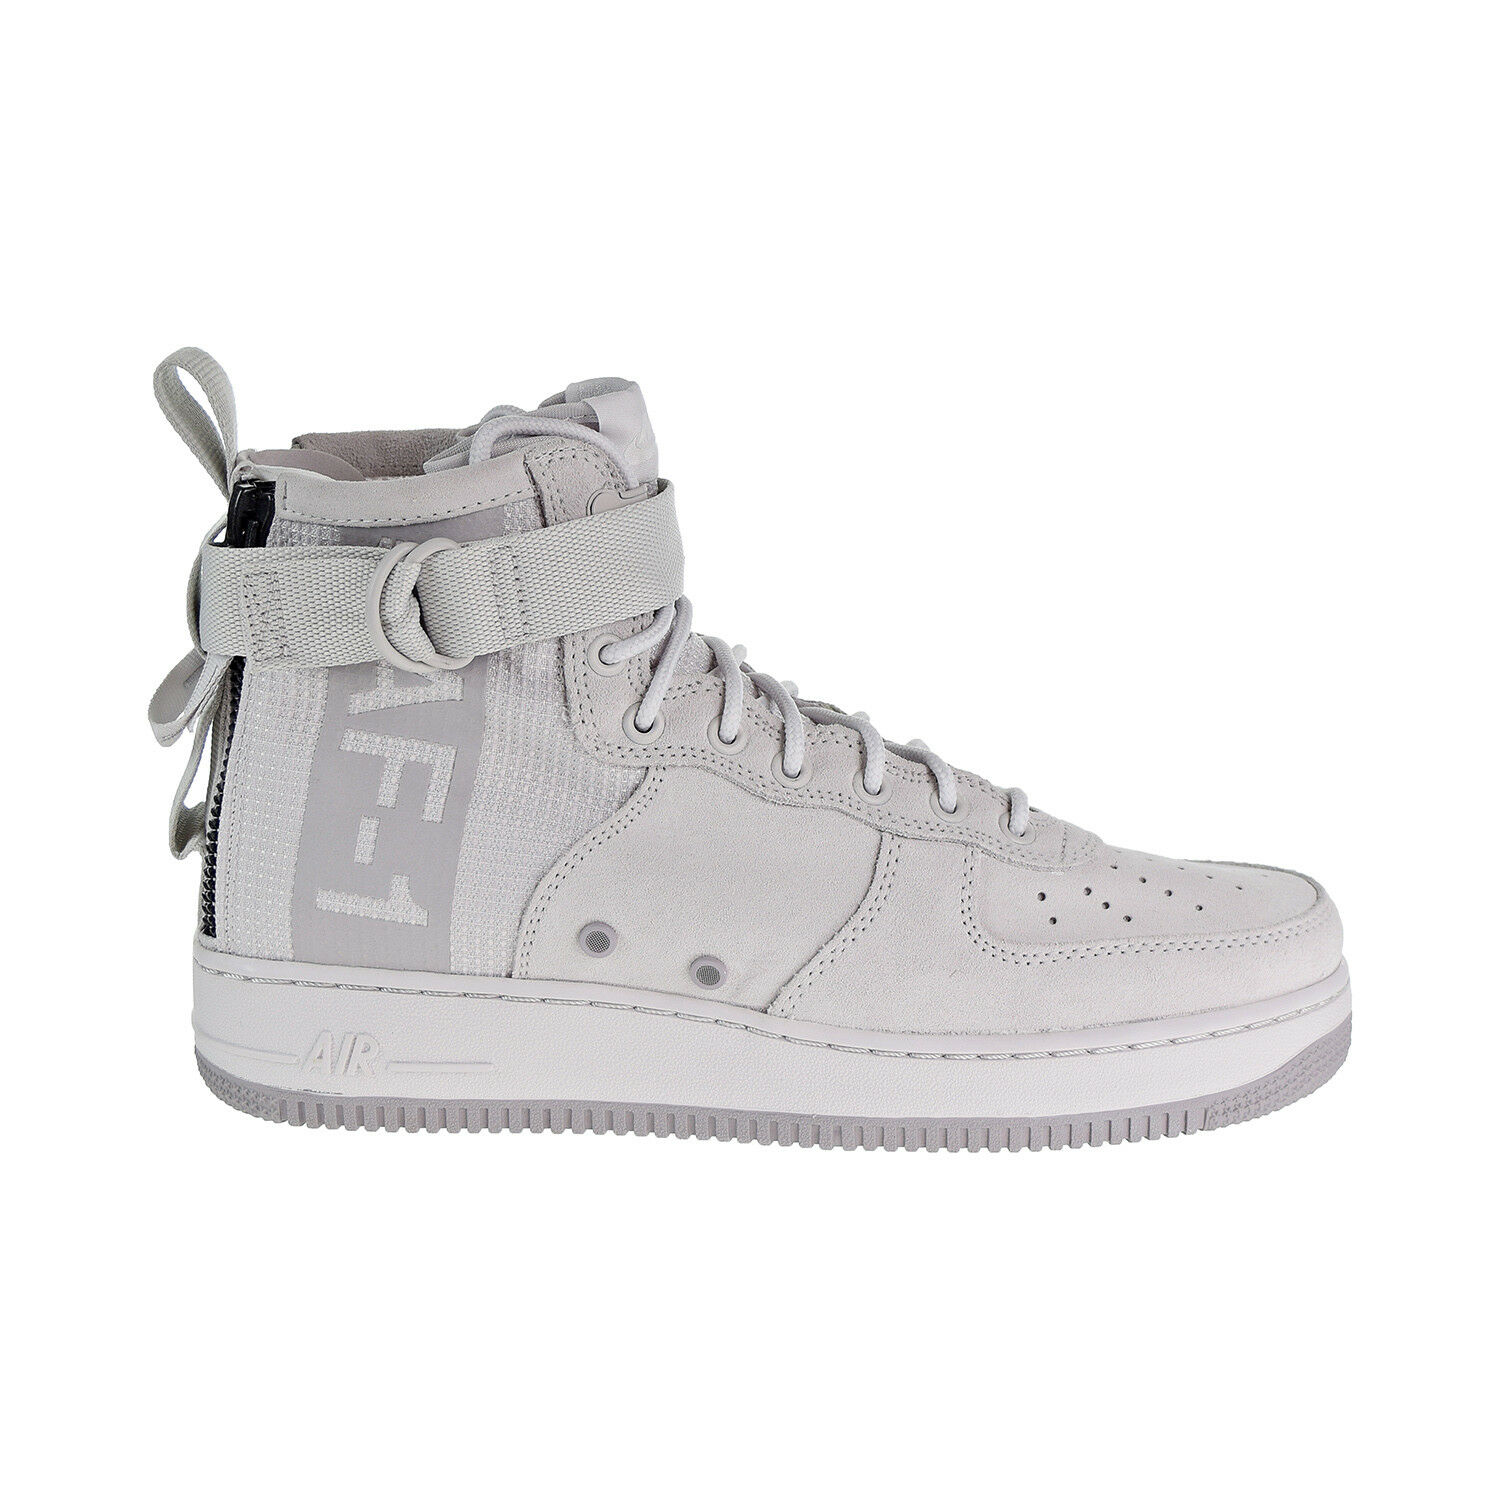 Nike SF Air Force 1 Mid 17 Men's Shoes Vast Grey/Atmosphere Grey AJ9502-001